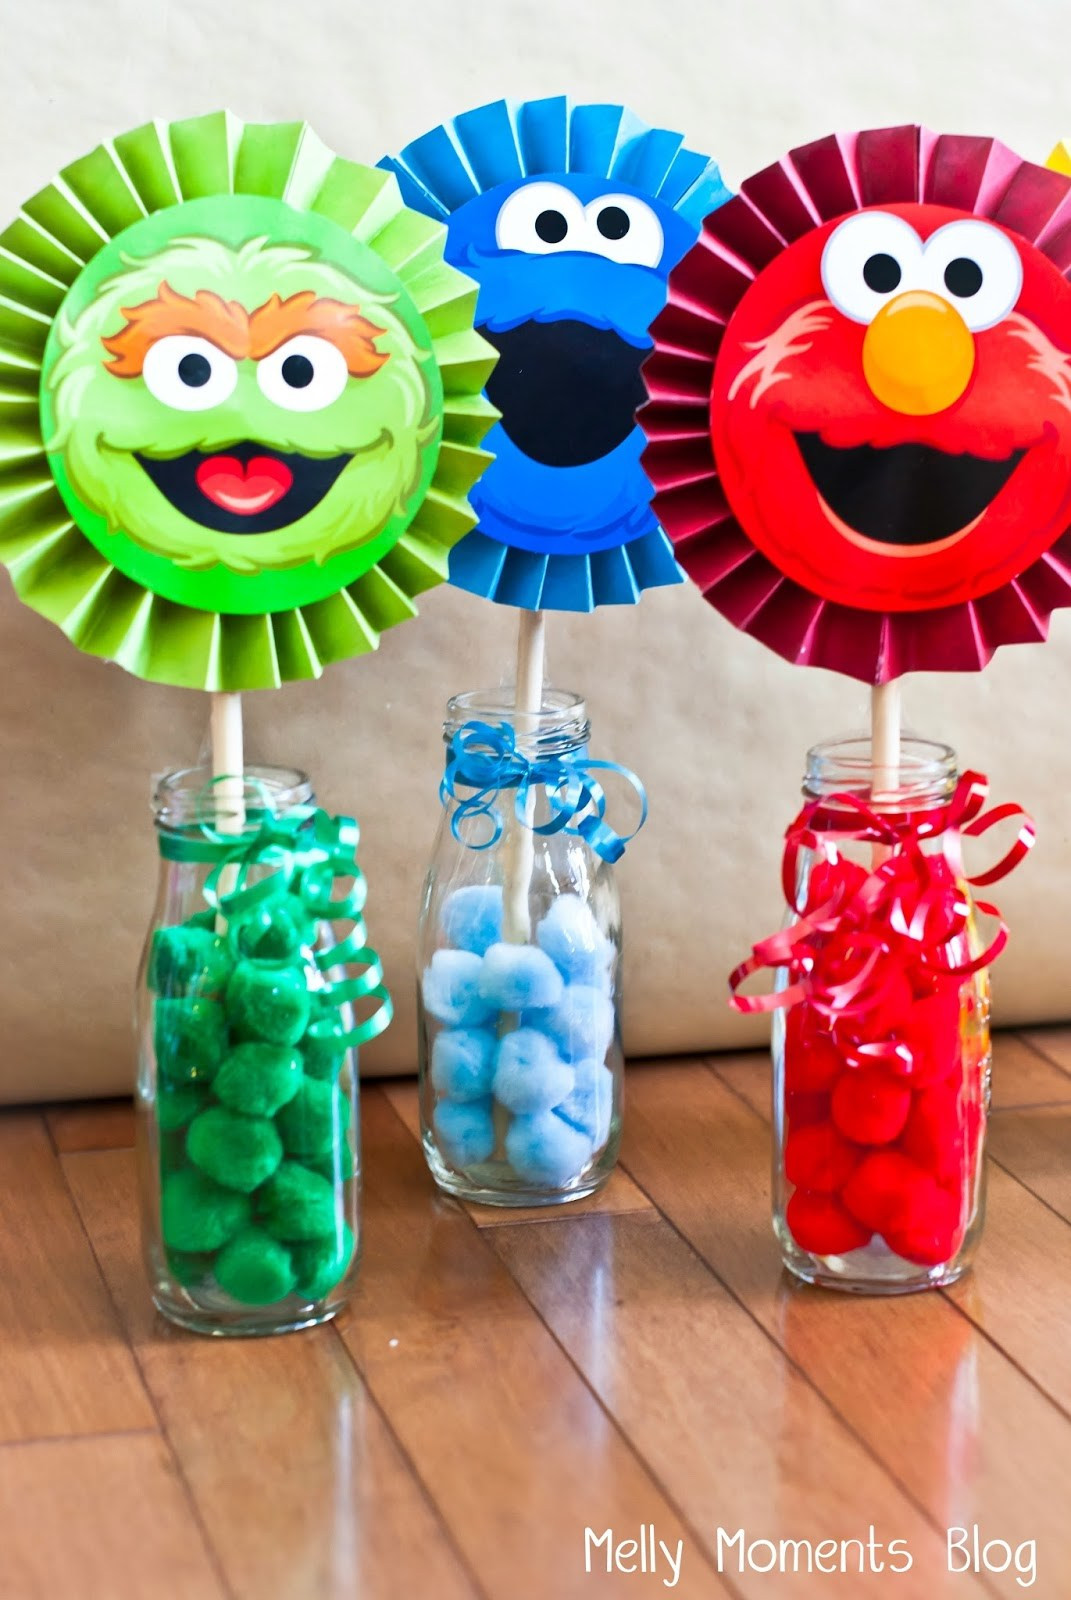 Best ideas about Elmo Birthday Decorations . Save or Pin Sesame Street & Elmo Themed Birthday Party Now.